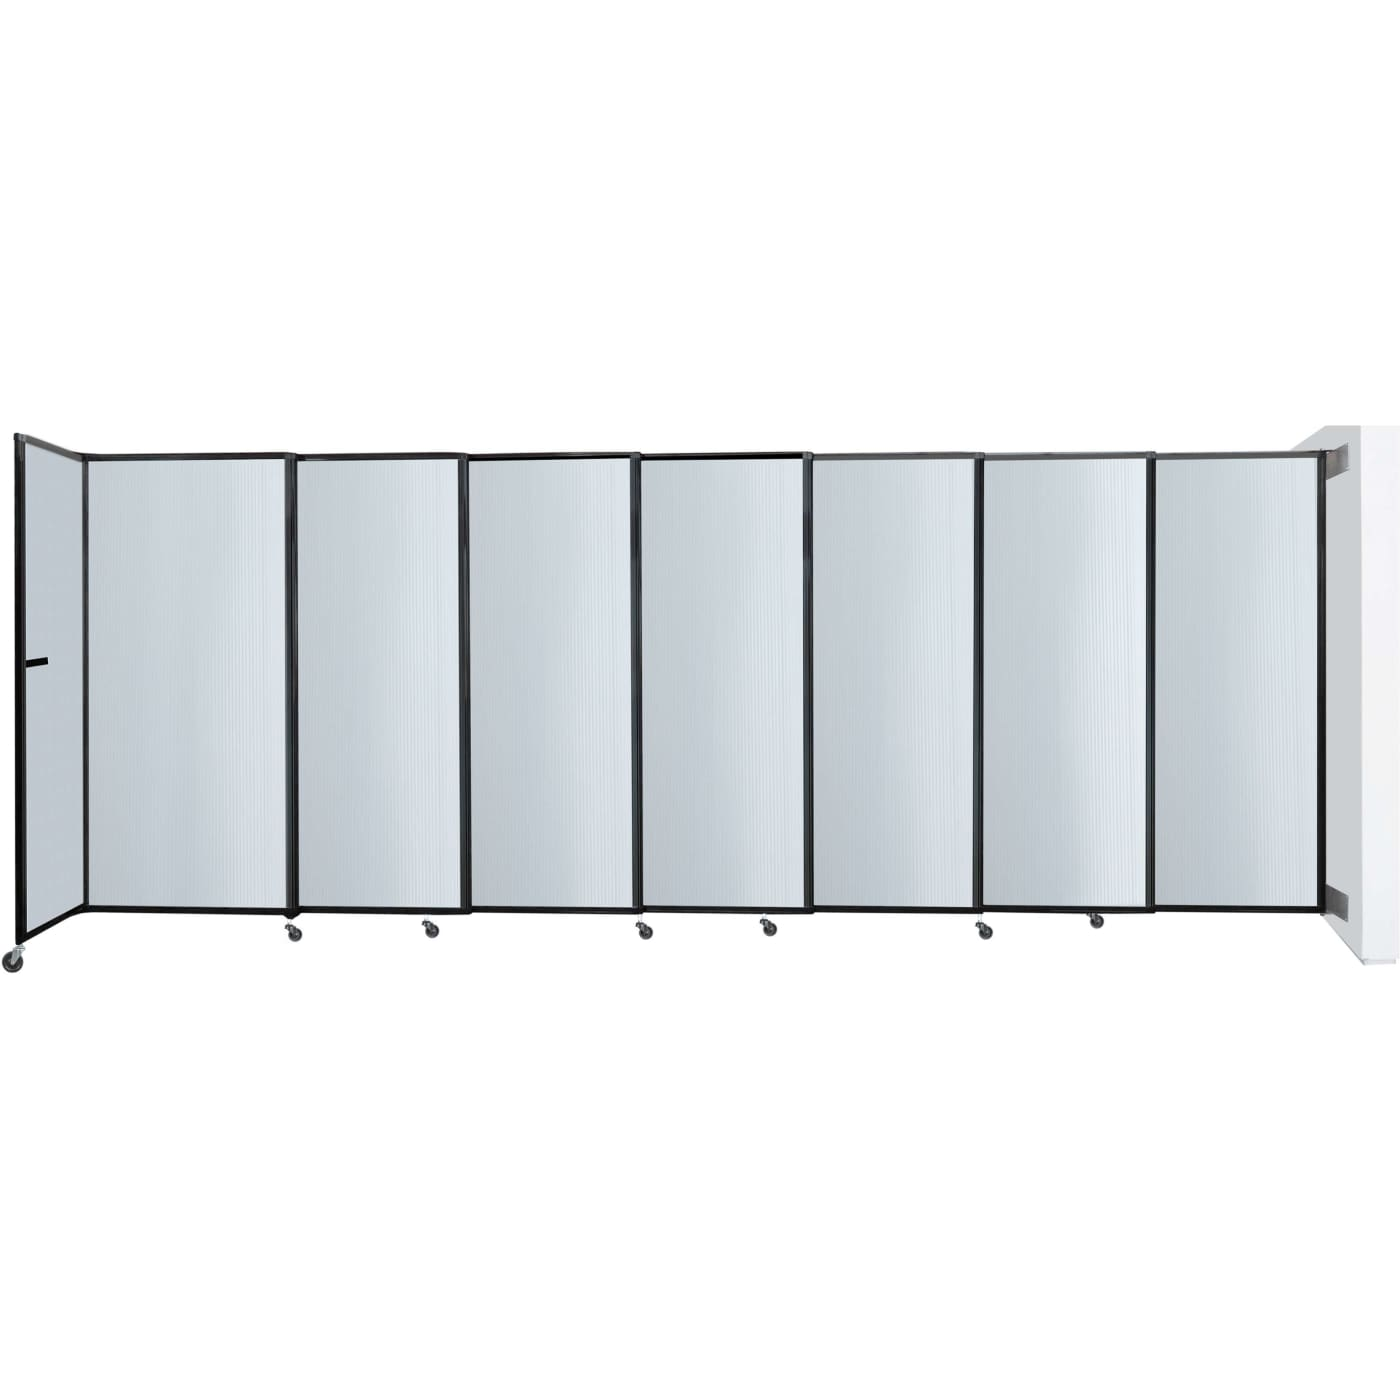 Versare StraightWall 76 x 113 Clear Polycarbonate Wall Mount